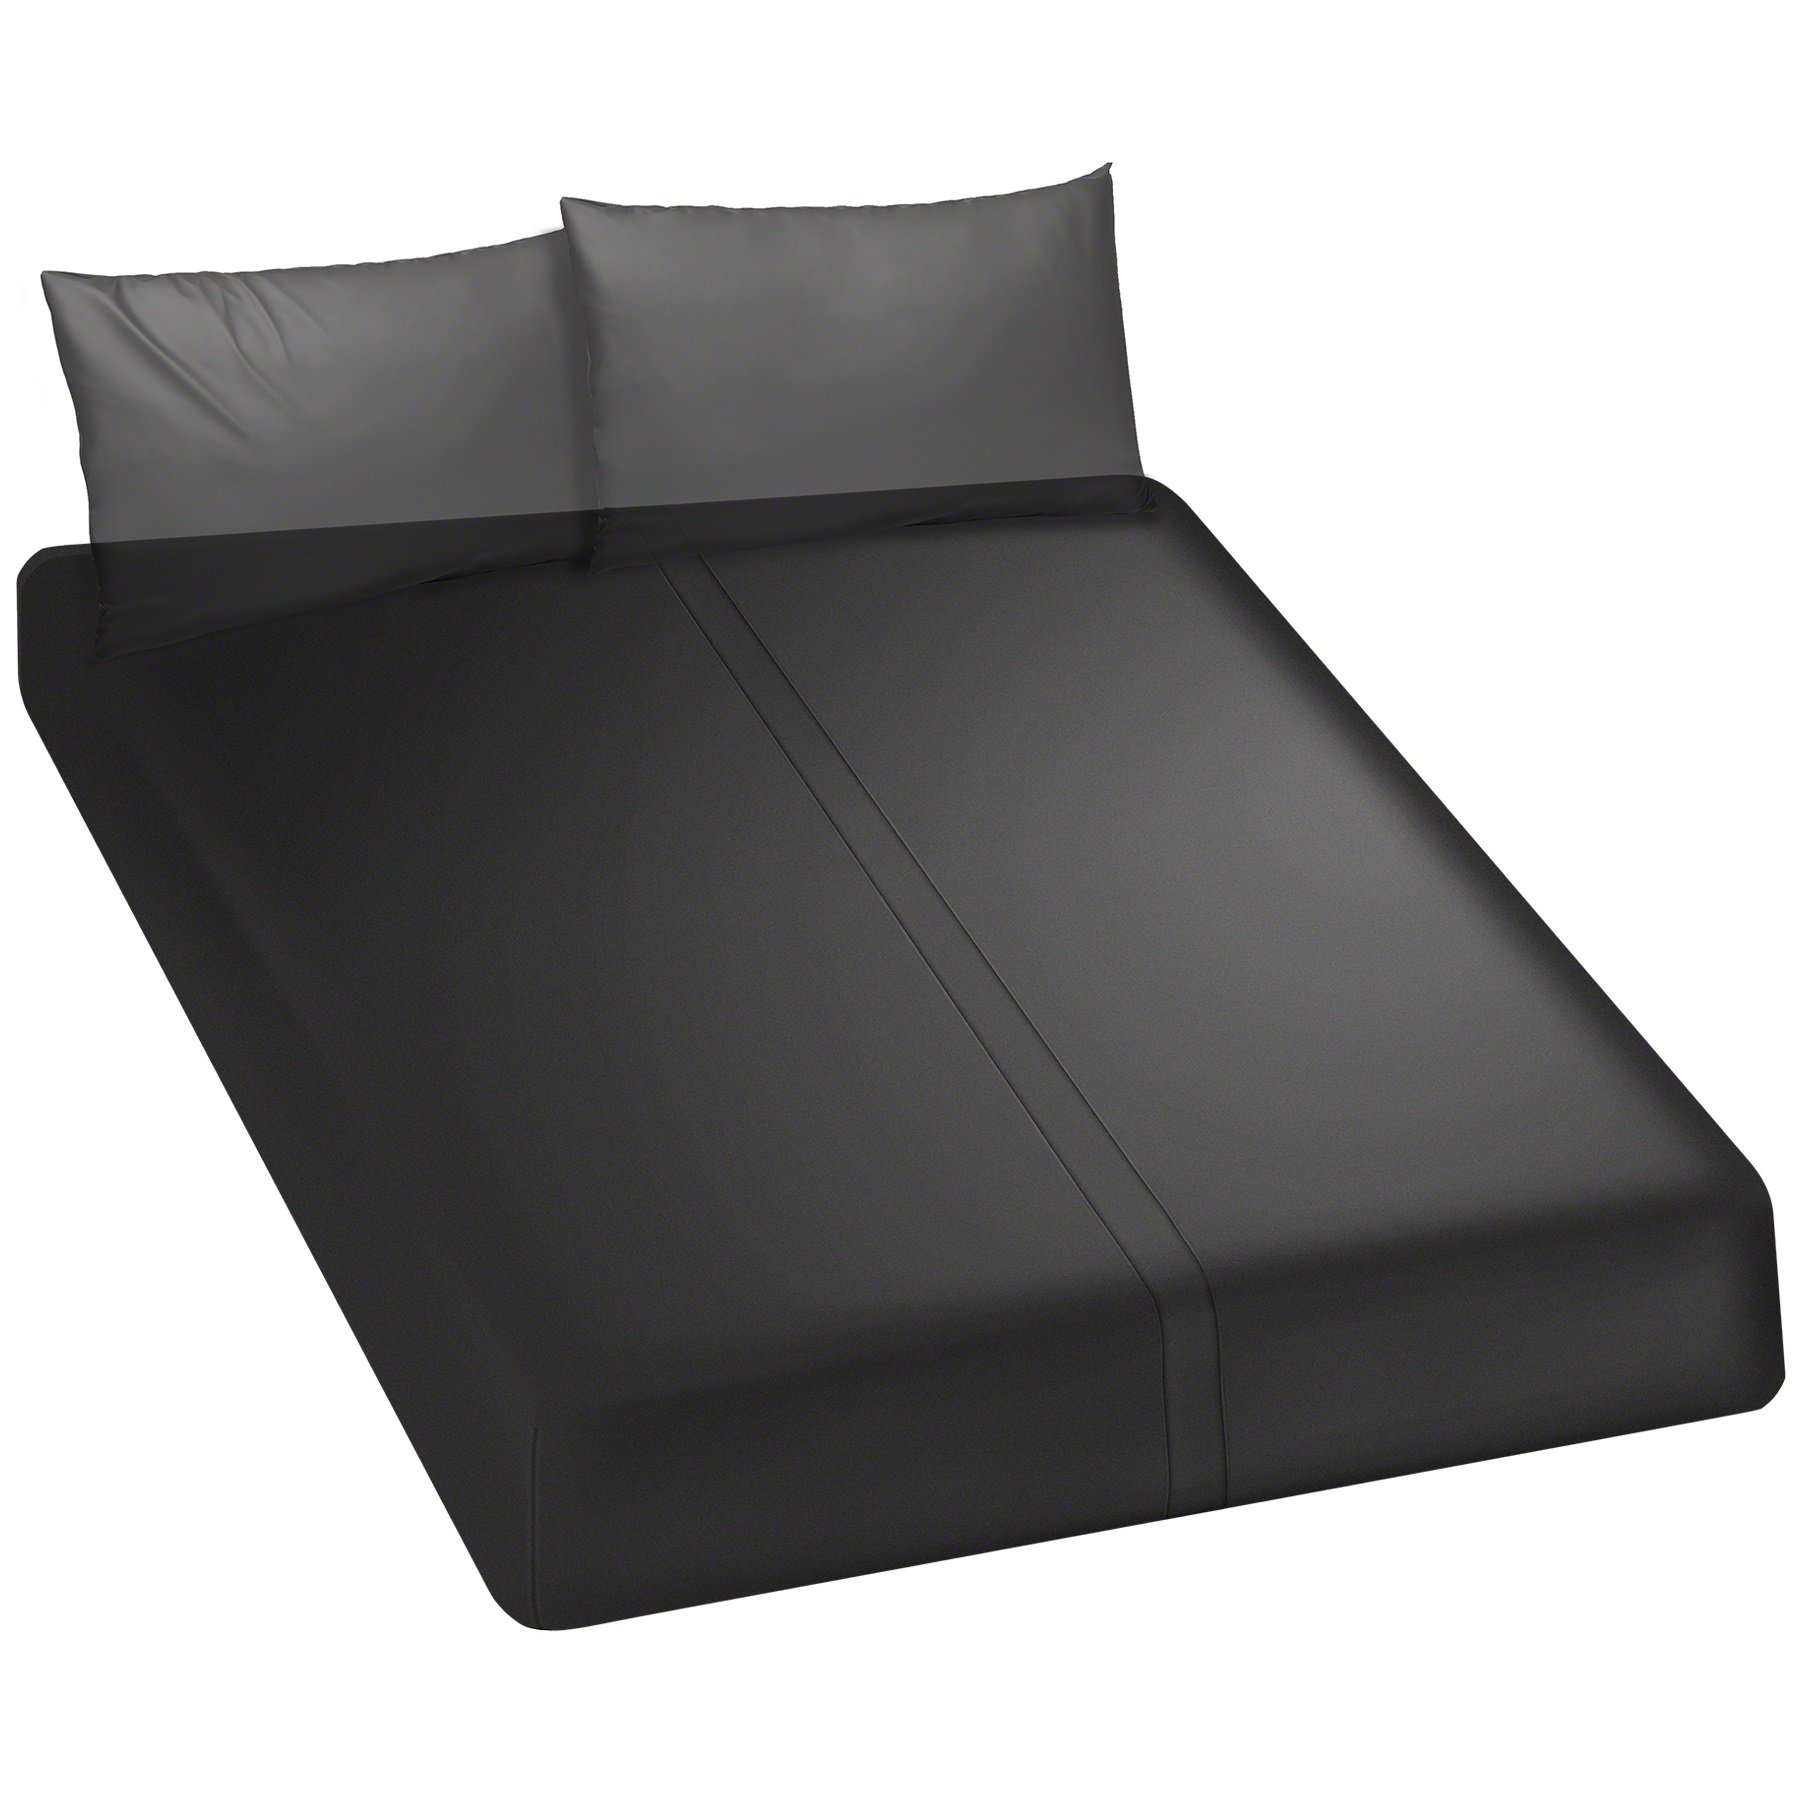 KINK By Doc Johnson Wet Works Fitted Waterproof Queen Sheet, Black by Doc Johnson